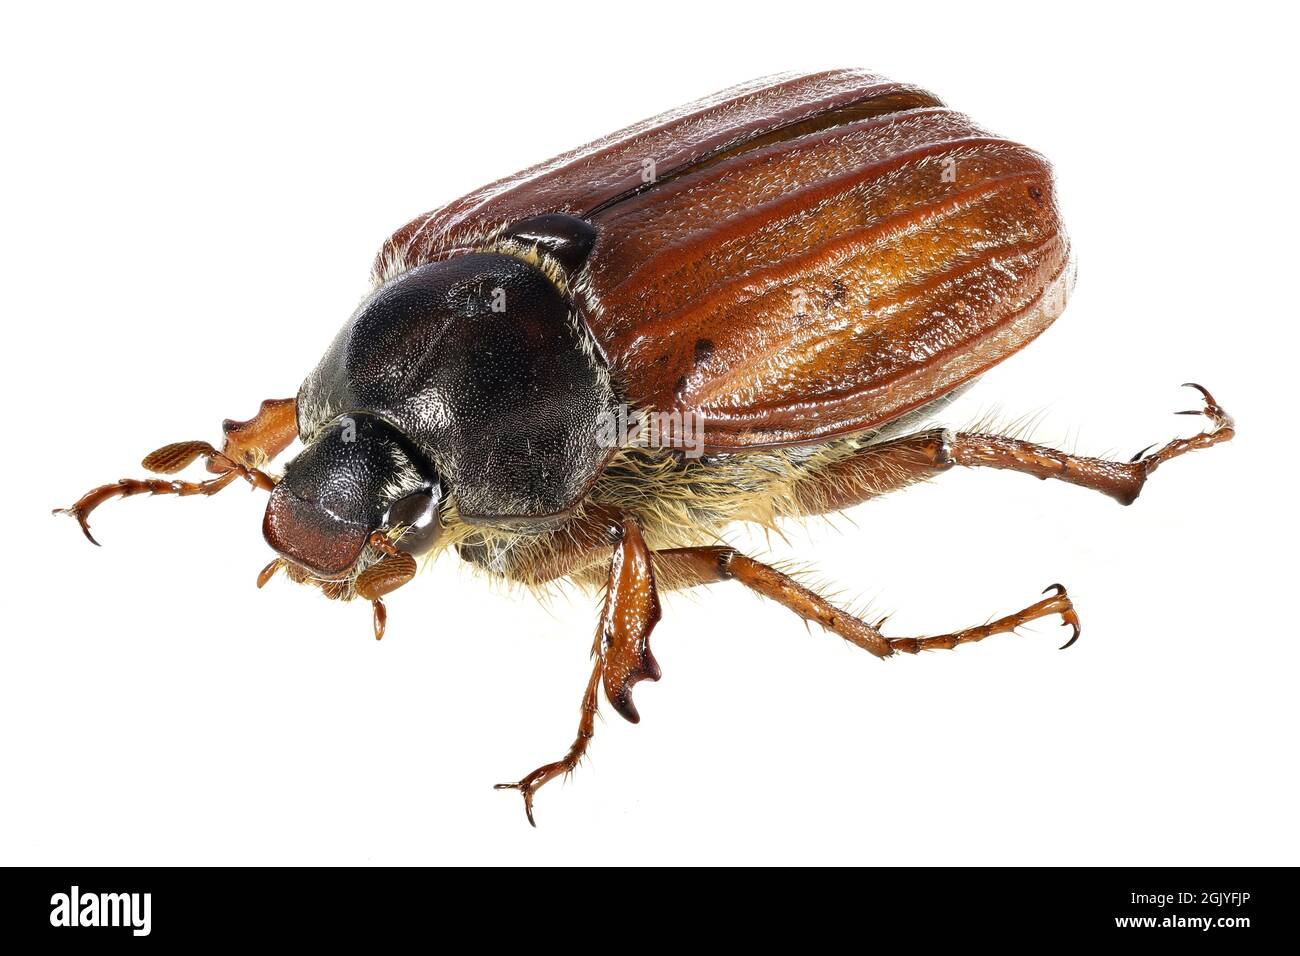 common cockchafer (Melolontha melolontha) from Rheinberg, Germany isolated on white background Stock Photo